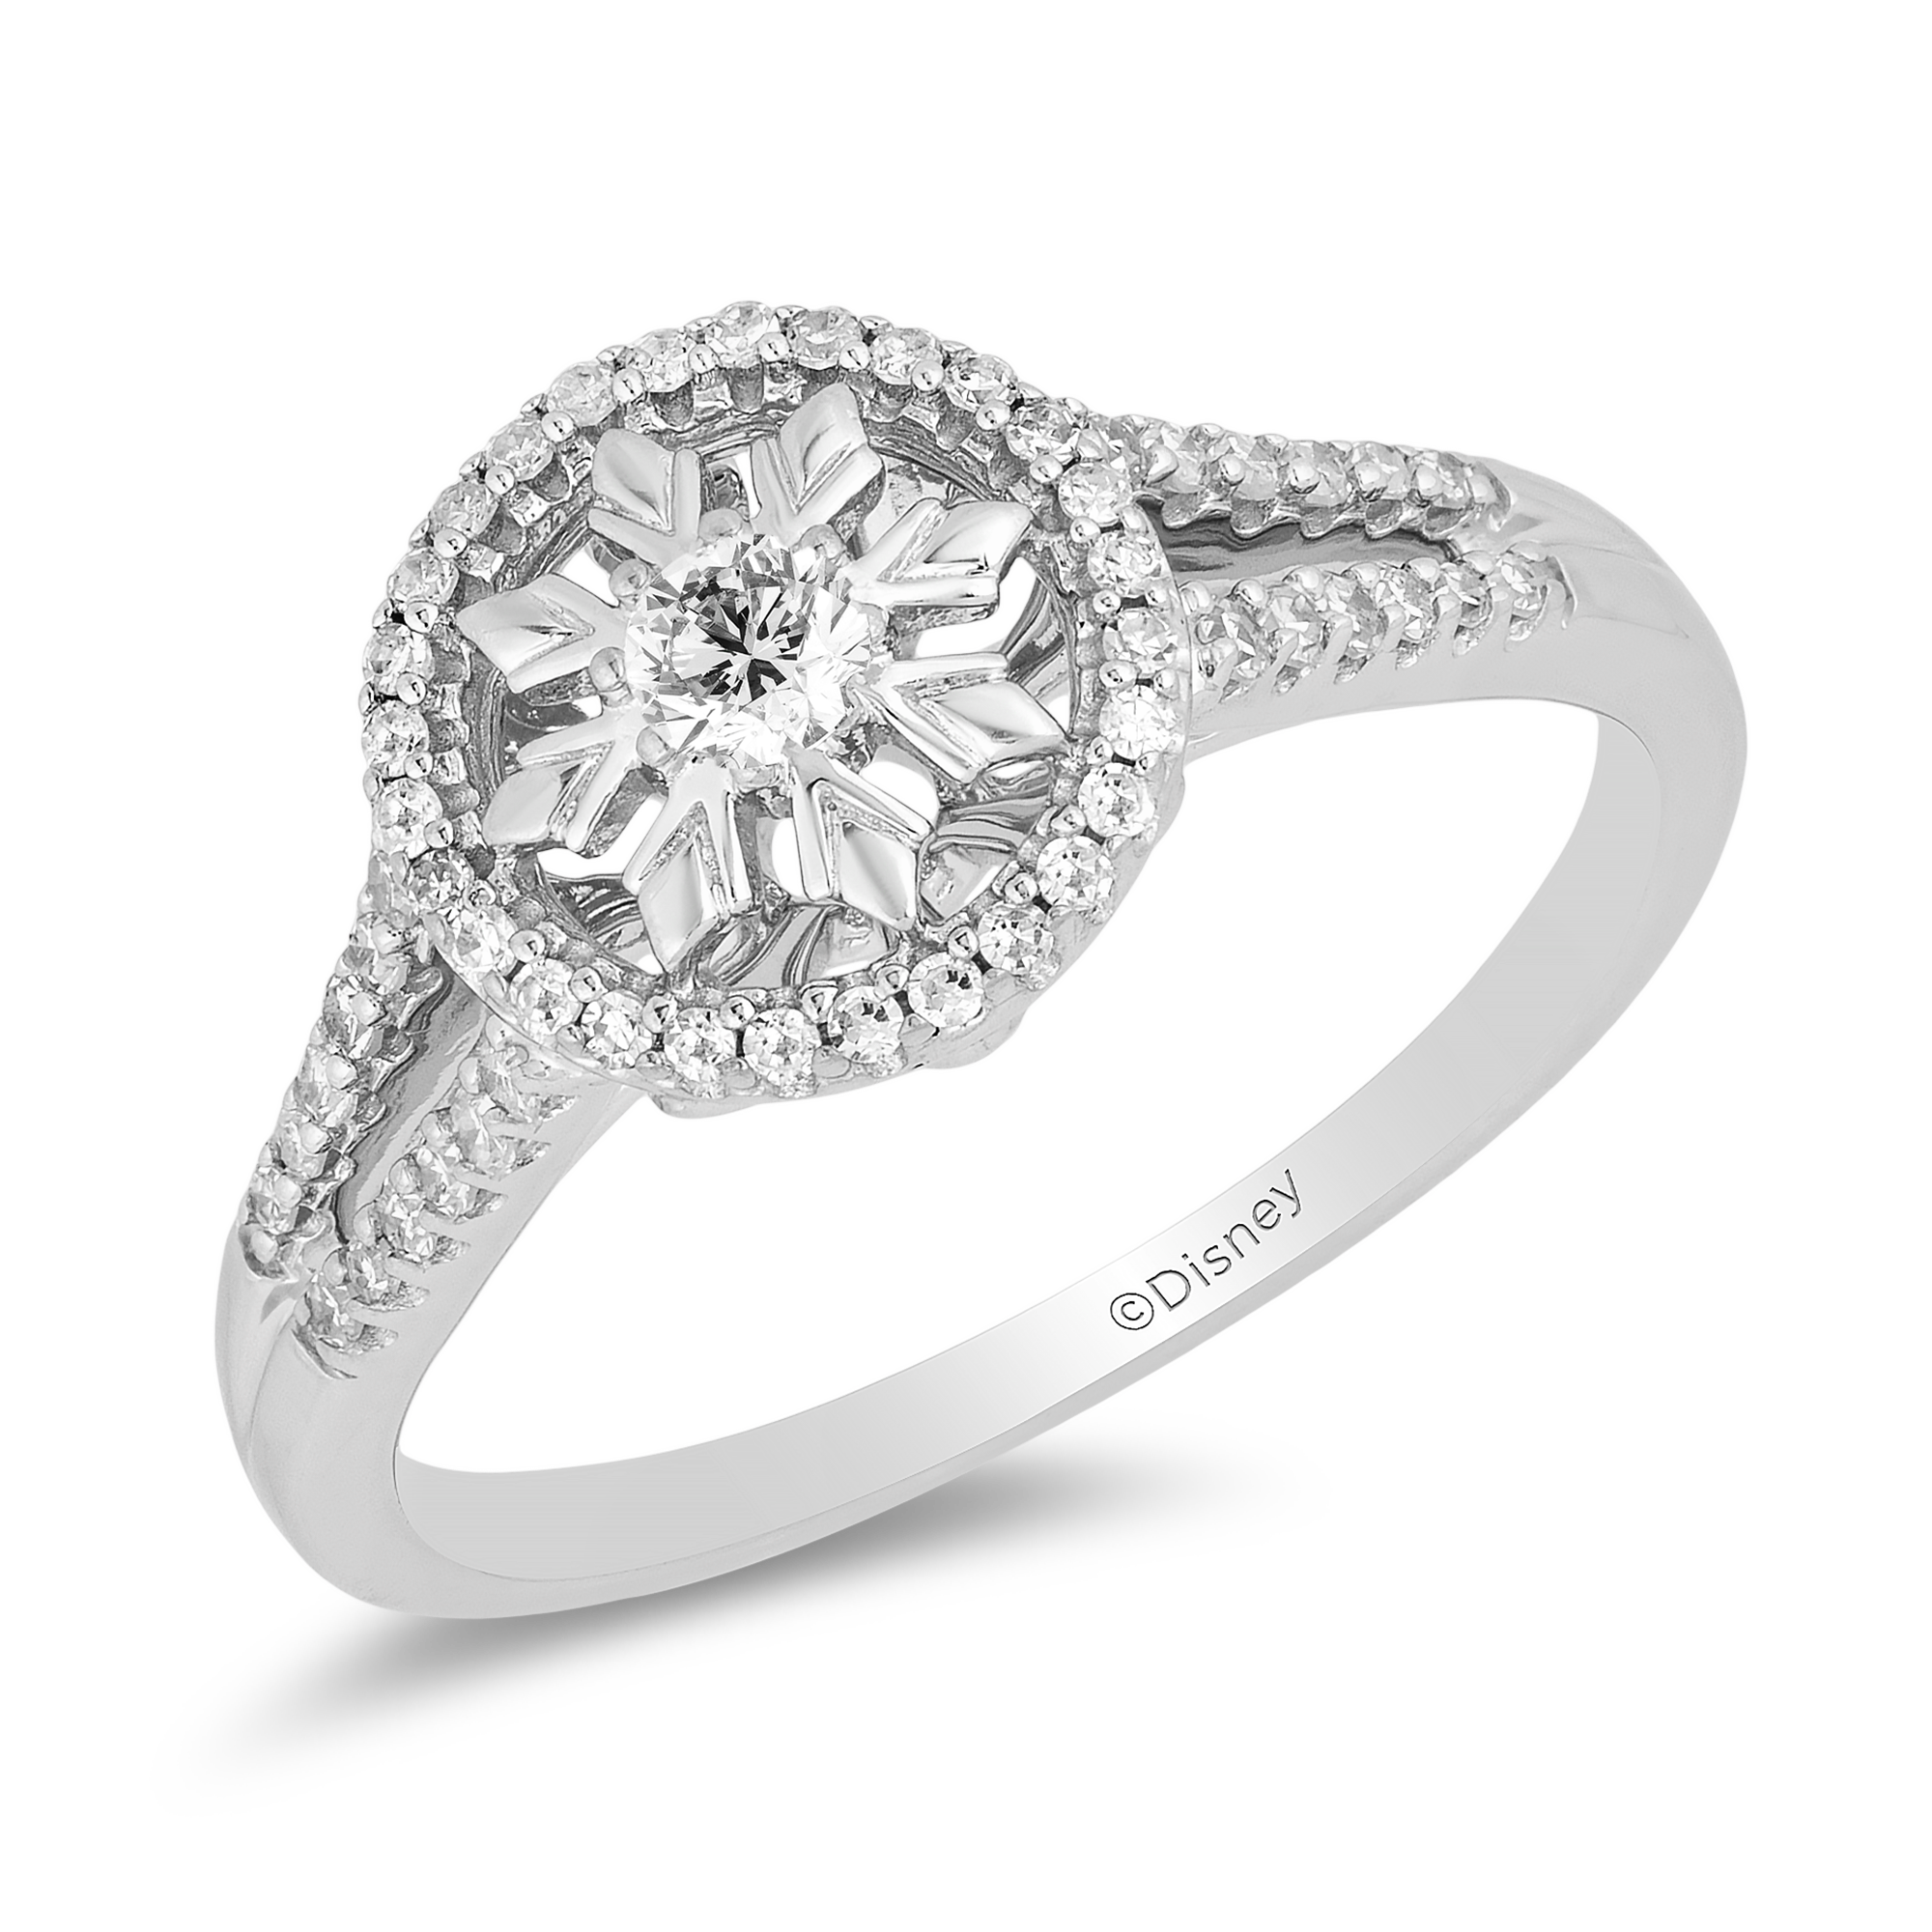 enchanted_disney-elsa_promise_ring-white_gold_0.25CTTW_1